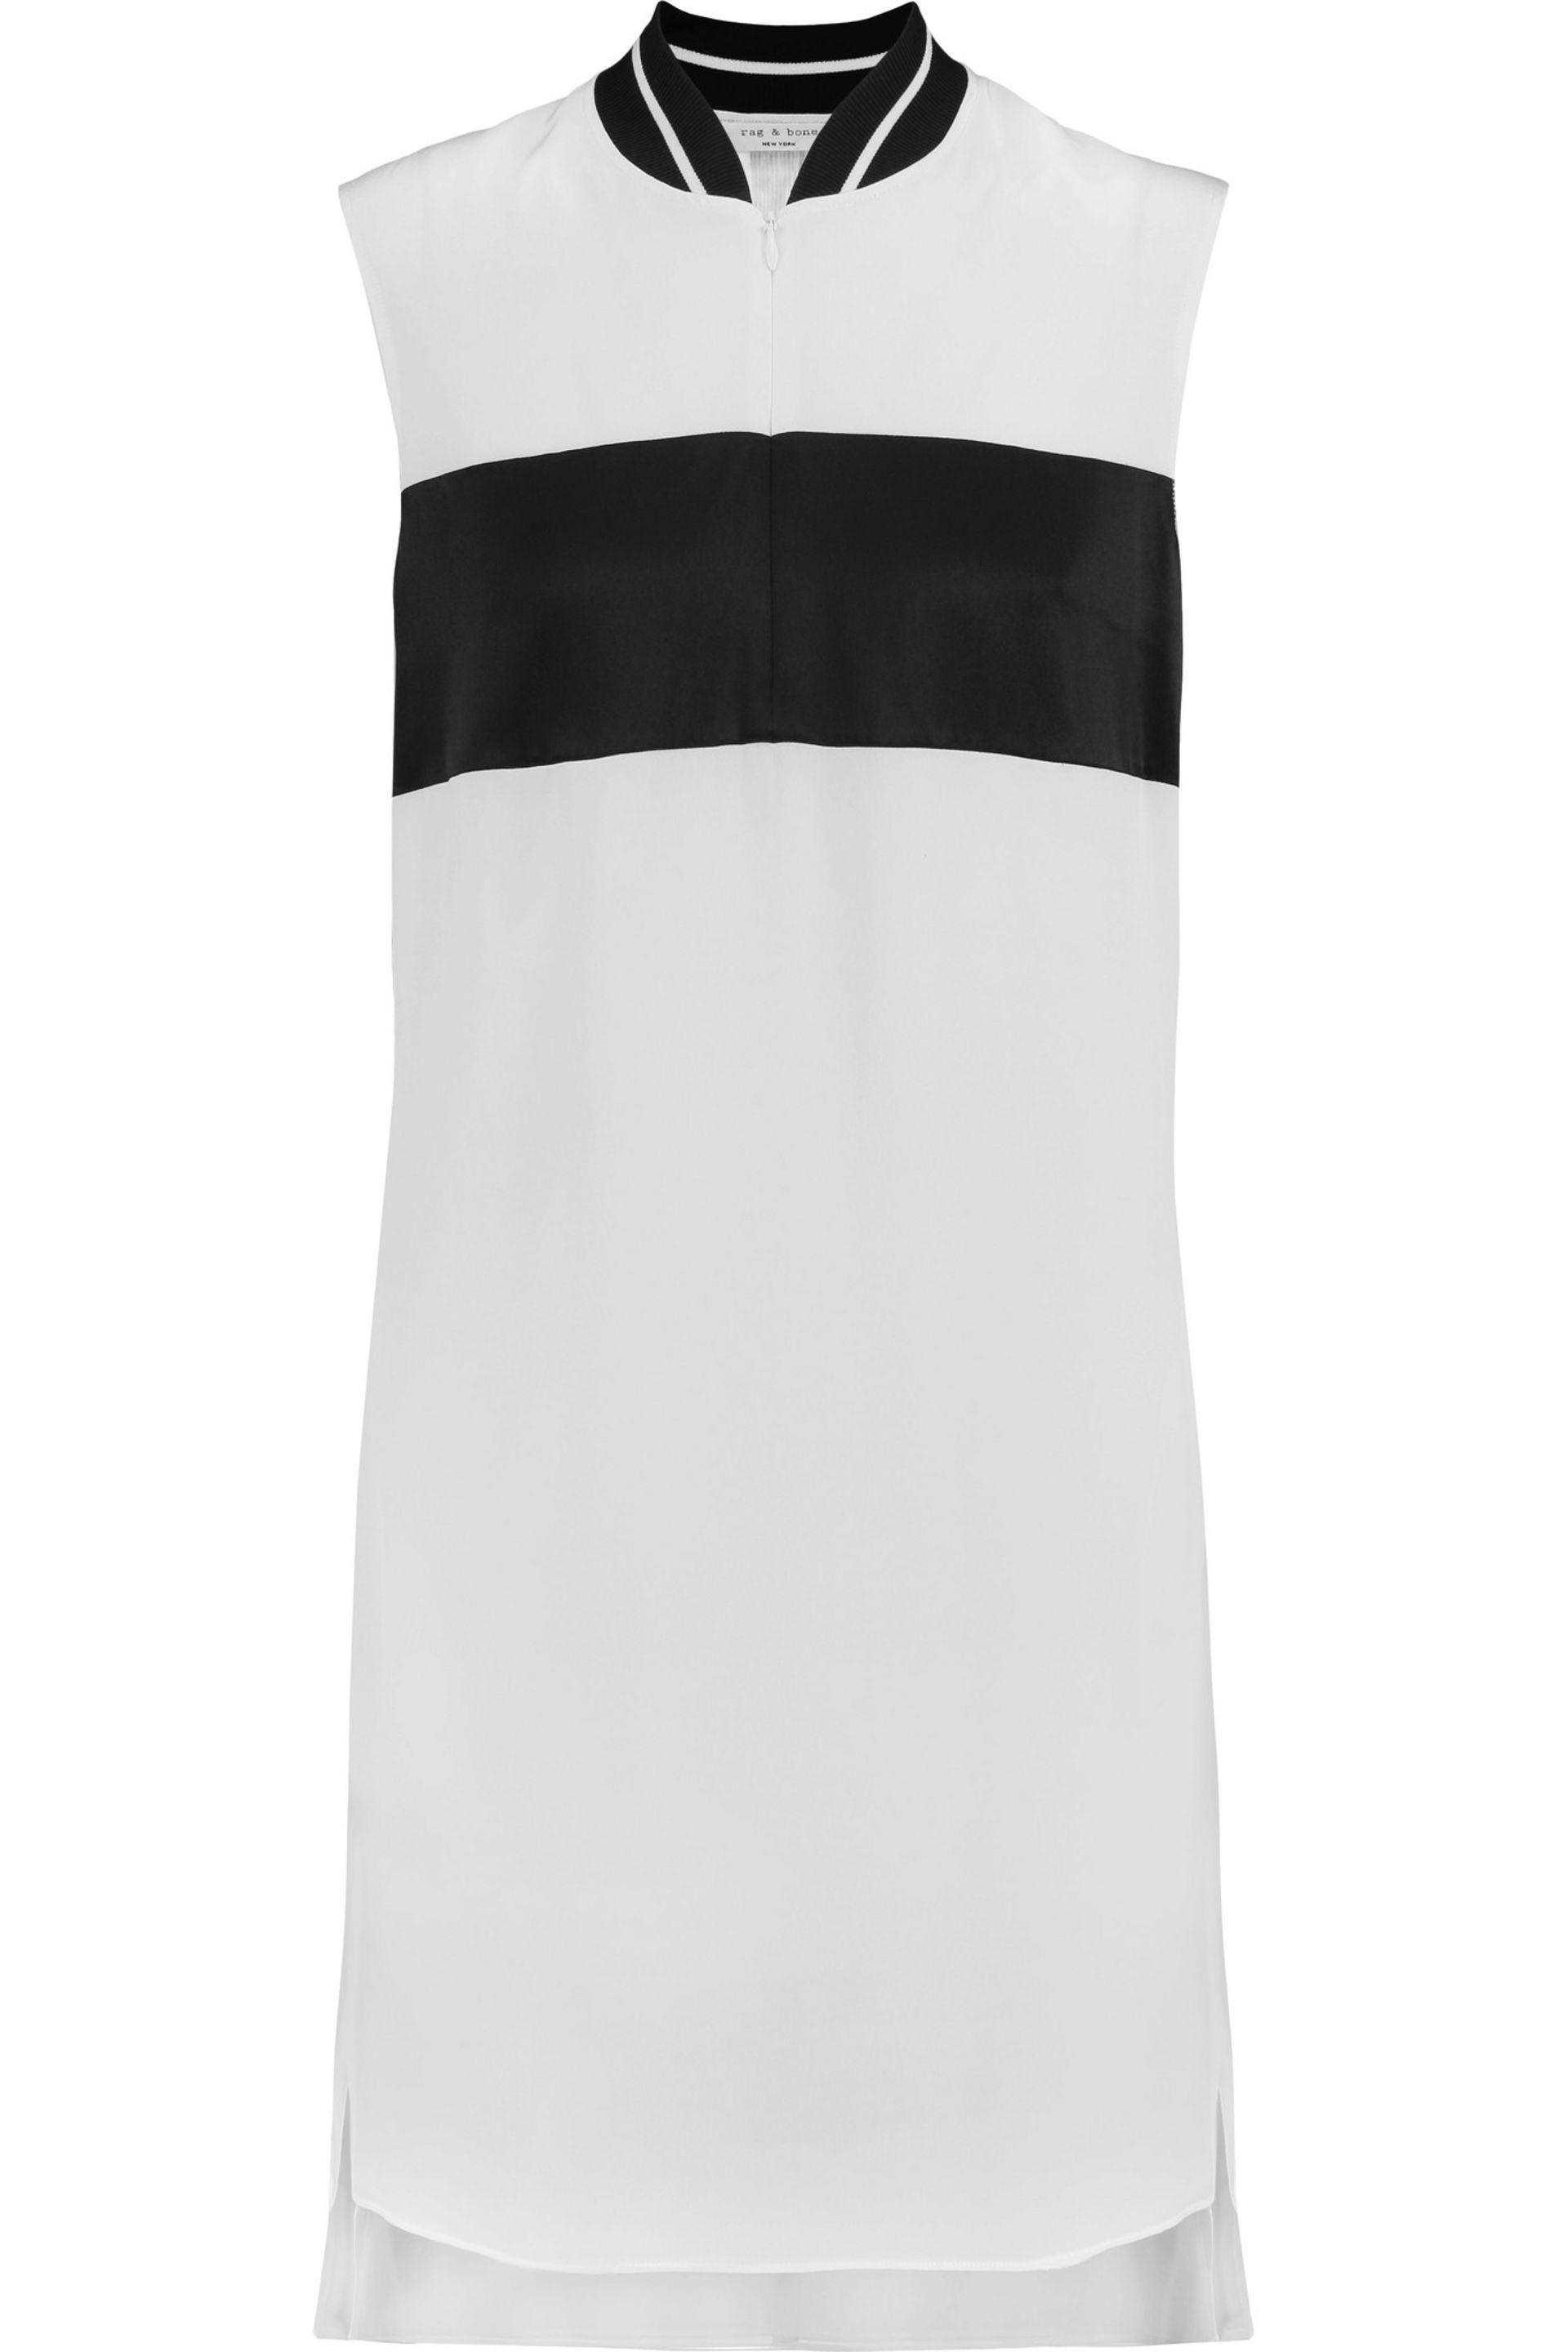 Cheap Sale High Quality For Sale Cheap Price From China Rag & Bone Woman Phoebe Leather-trimmed Checked Twill Mini Dress Black Size 2 Rag & Bone With Credit Card For Sale gK8MjUfyk9